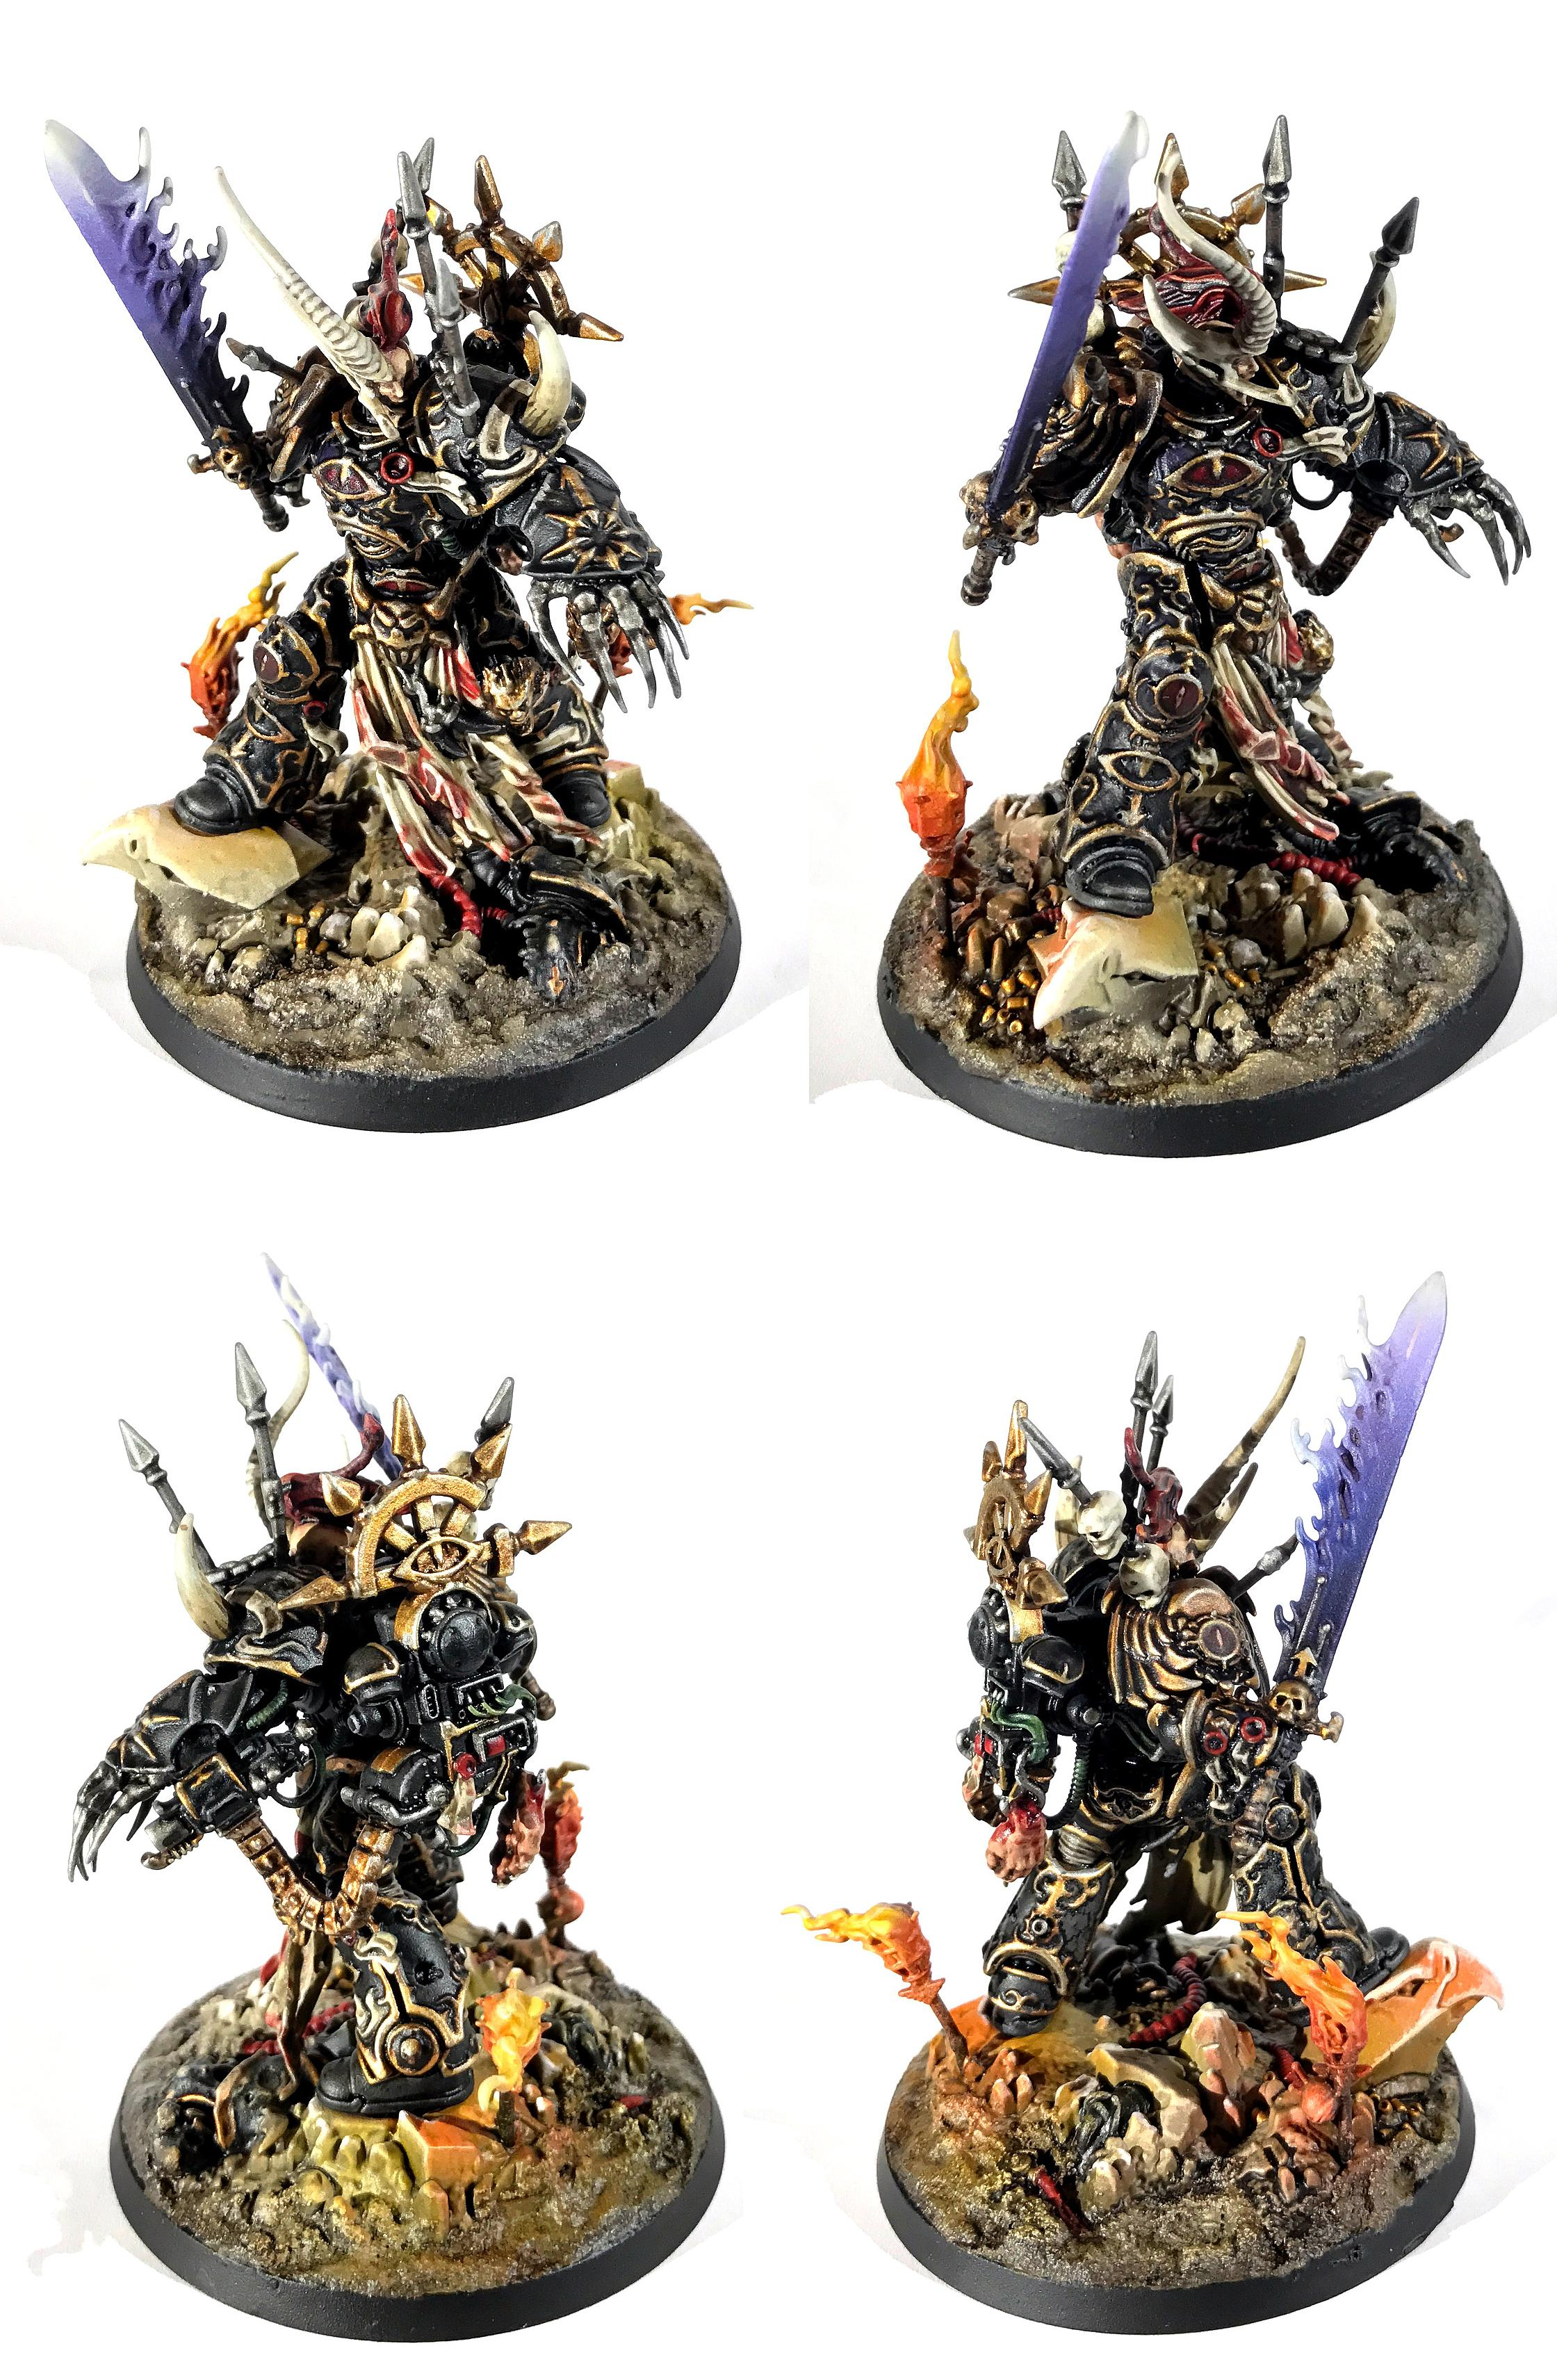 Abaddon, Chaos, Conversion, Marine Abuse, Roboute Guilliman, Warhammer 40,000